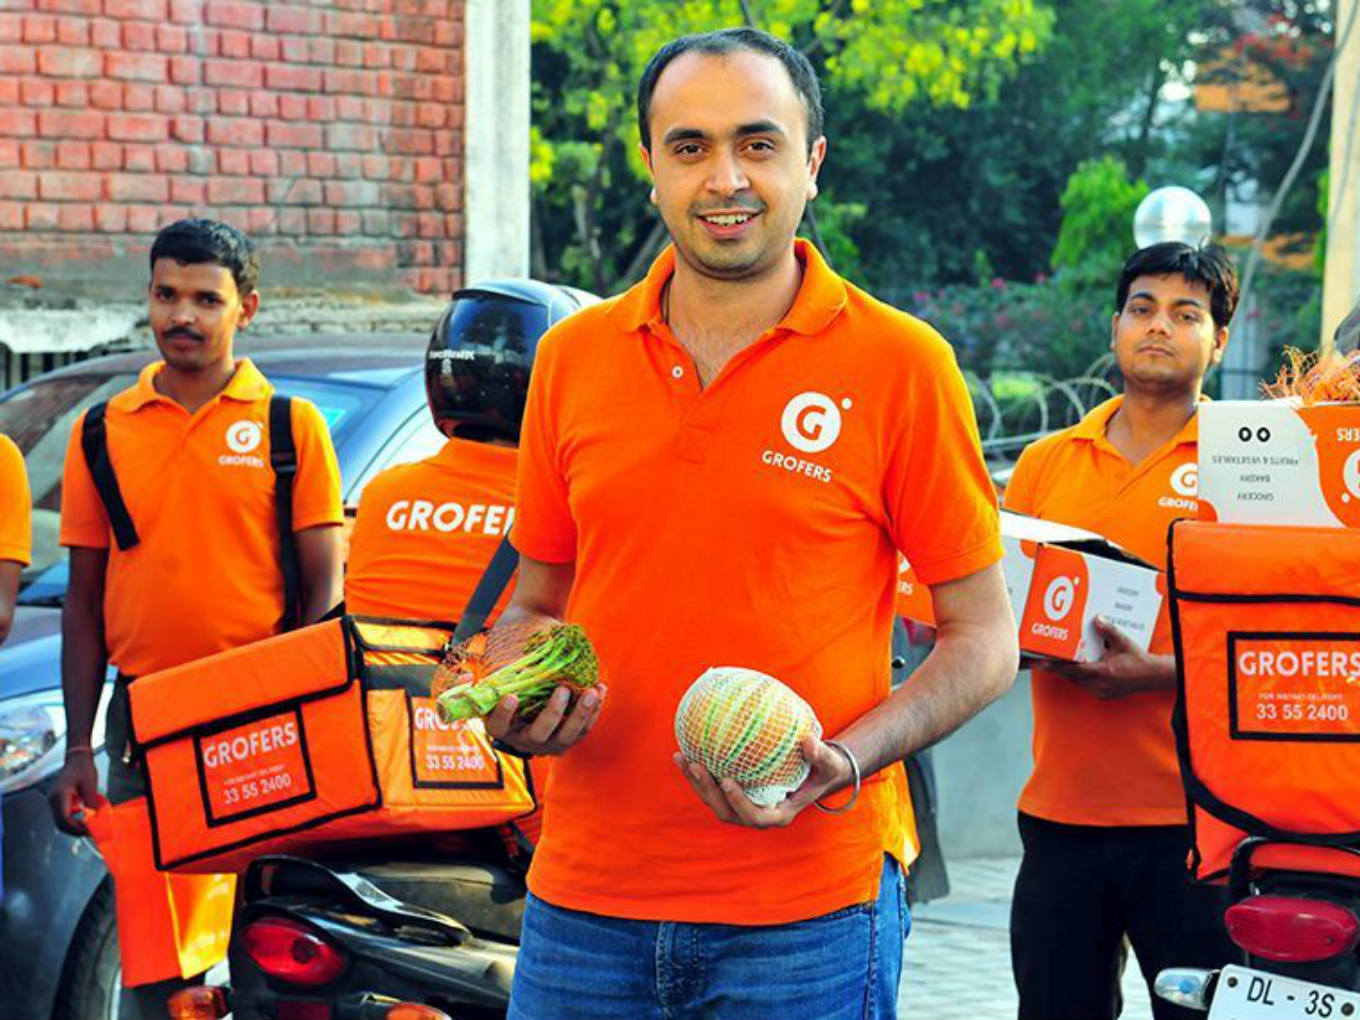 Times Group Picks Up $20 Mn Warrant In Grocery Unicorn Grofers